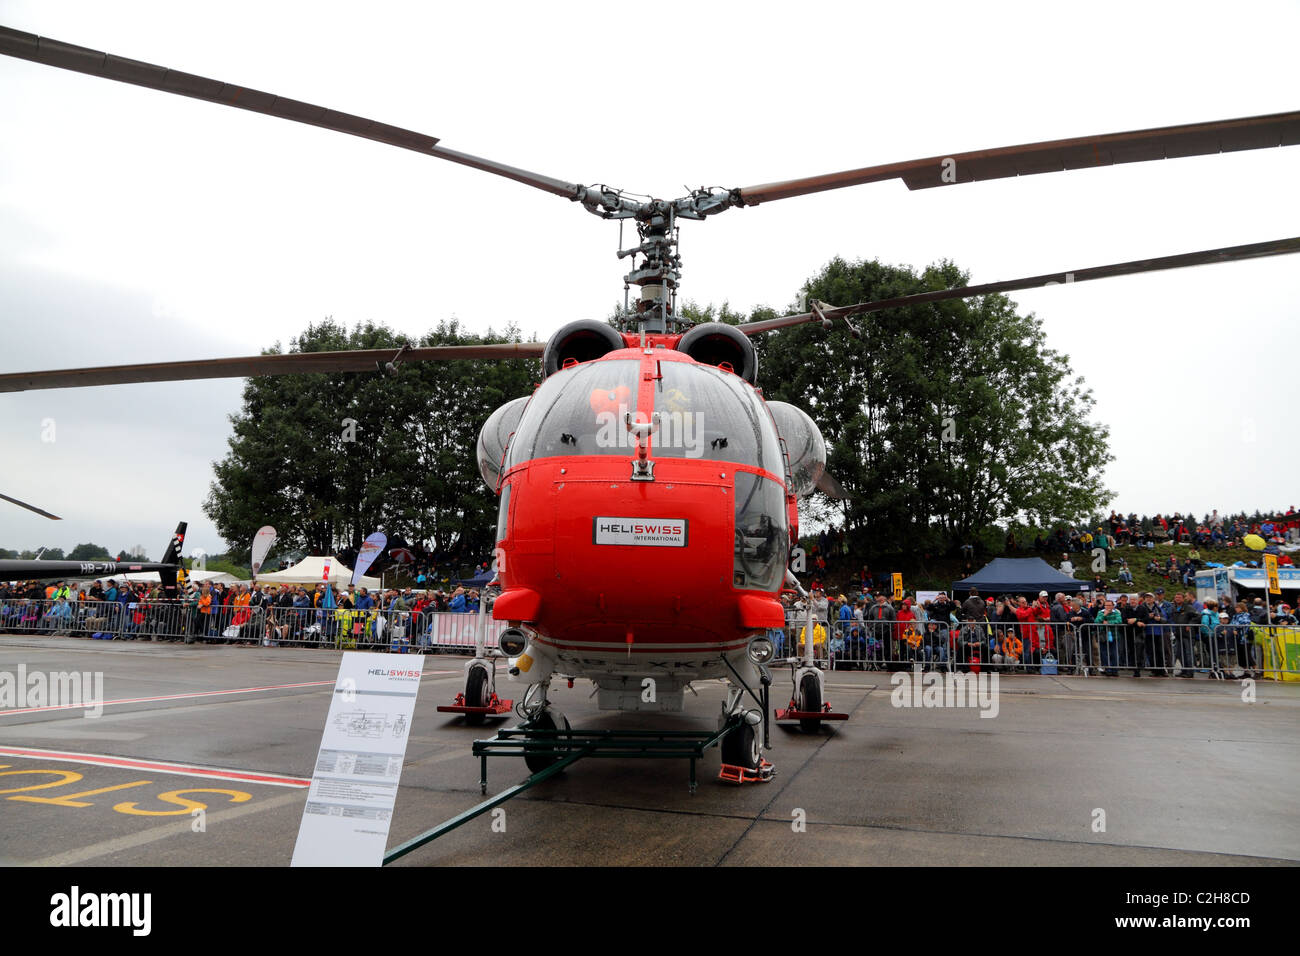 HeliSwiss presents its heavy lift Helicopter Kamov at the Airshow '100 years Swiss aviation' - Stock Image